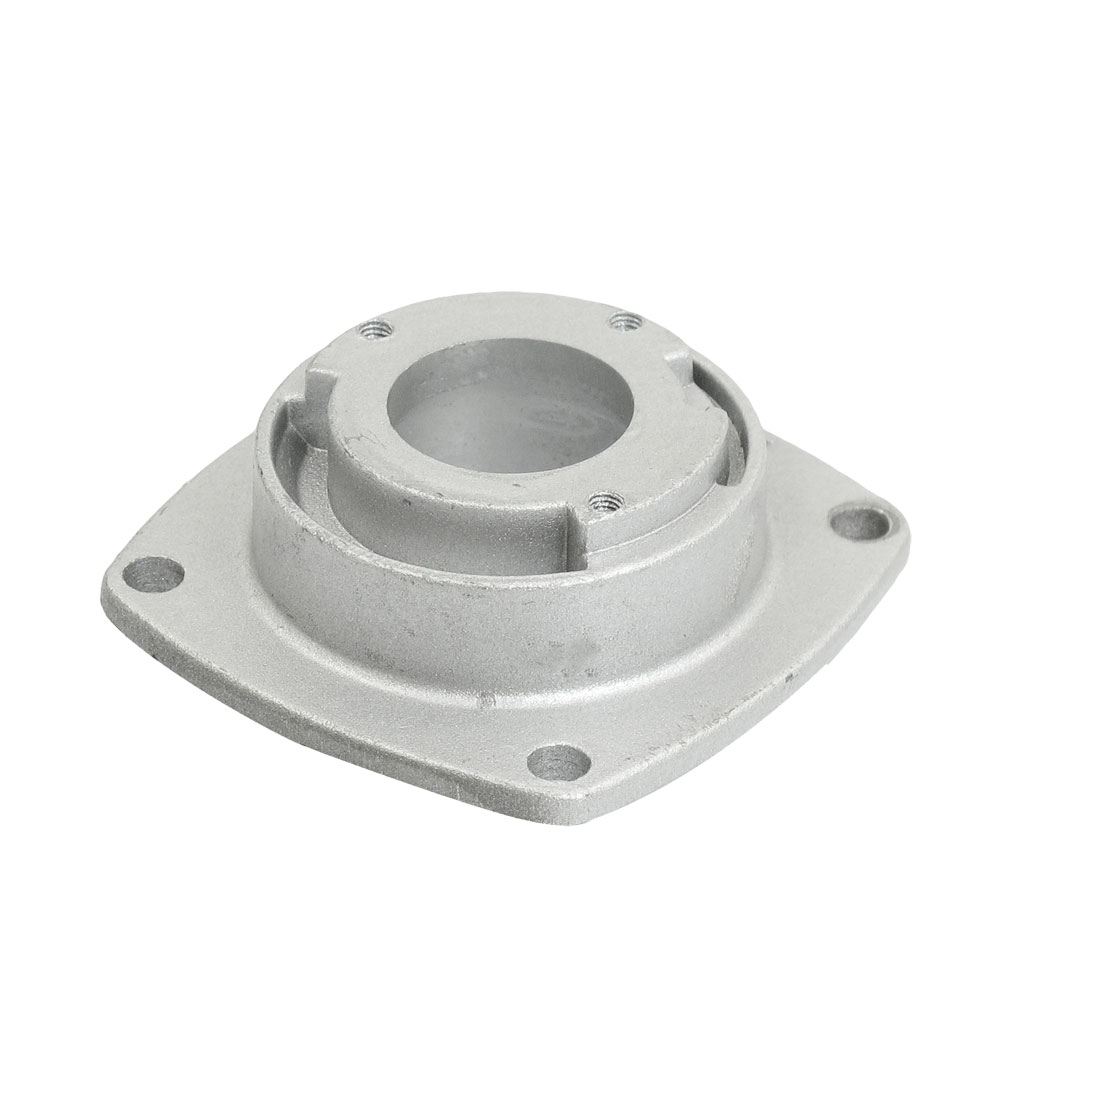 Aluminum Bearing Seat Replacement for Angle Grinder